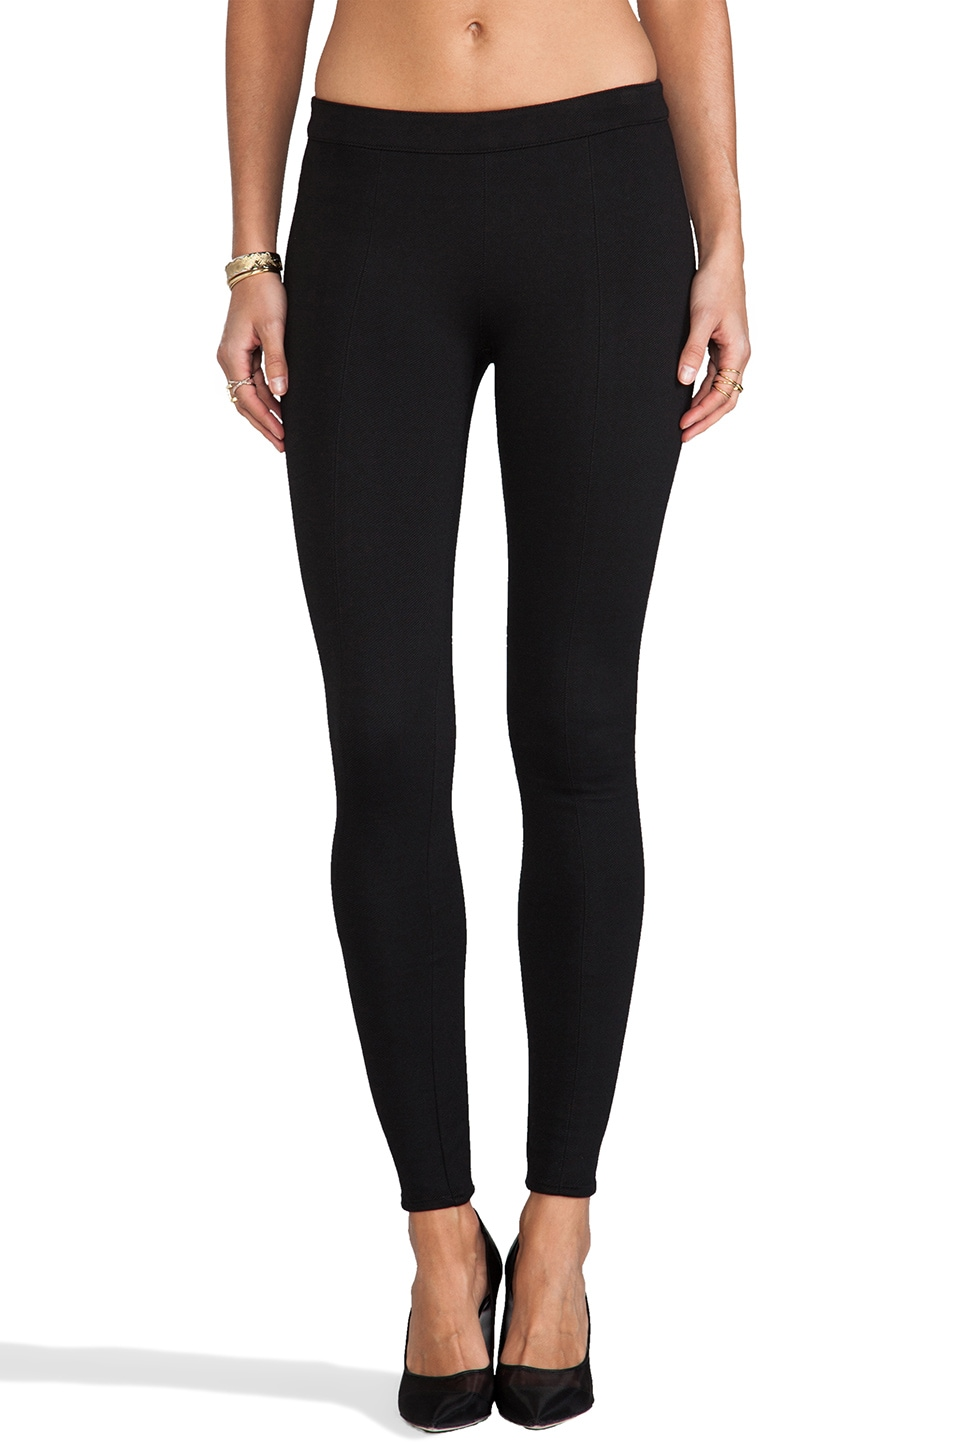 Bella Luxx Classic Twill Legging in Black